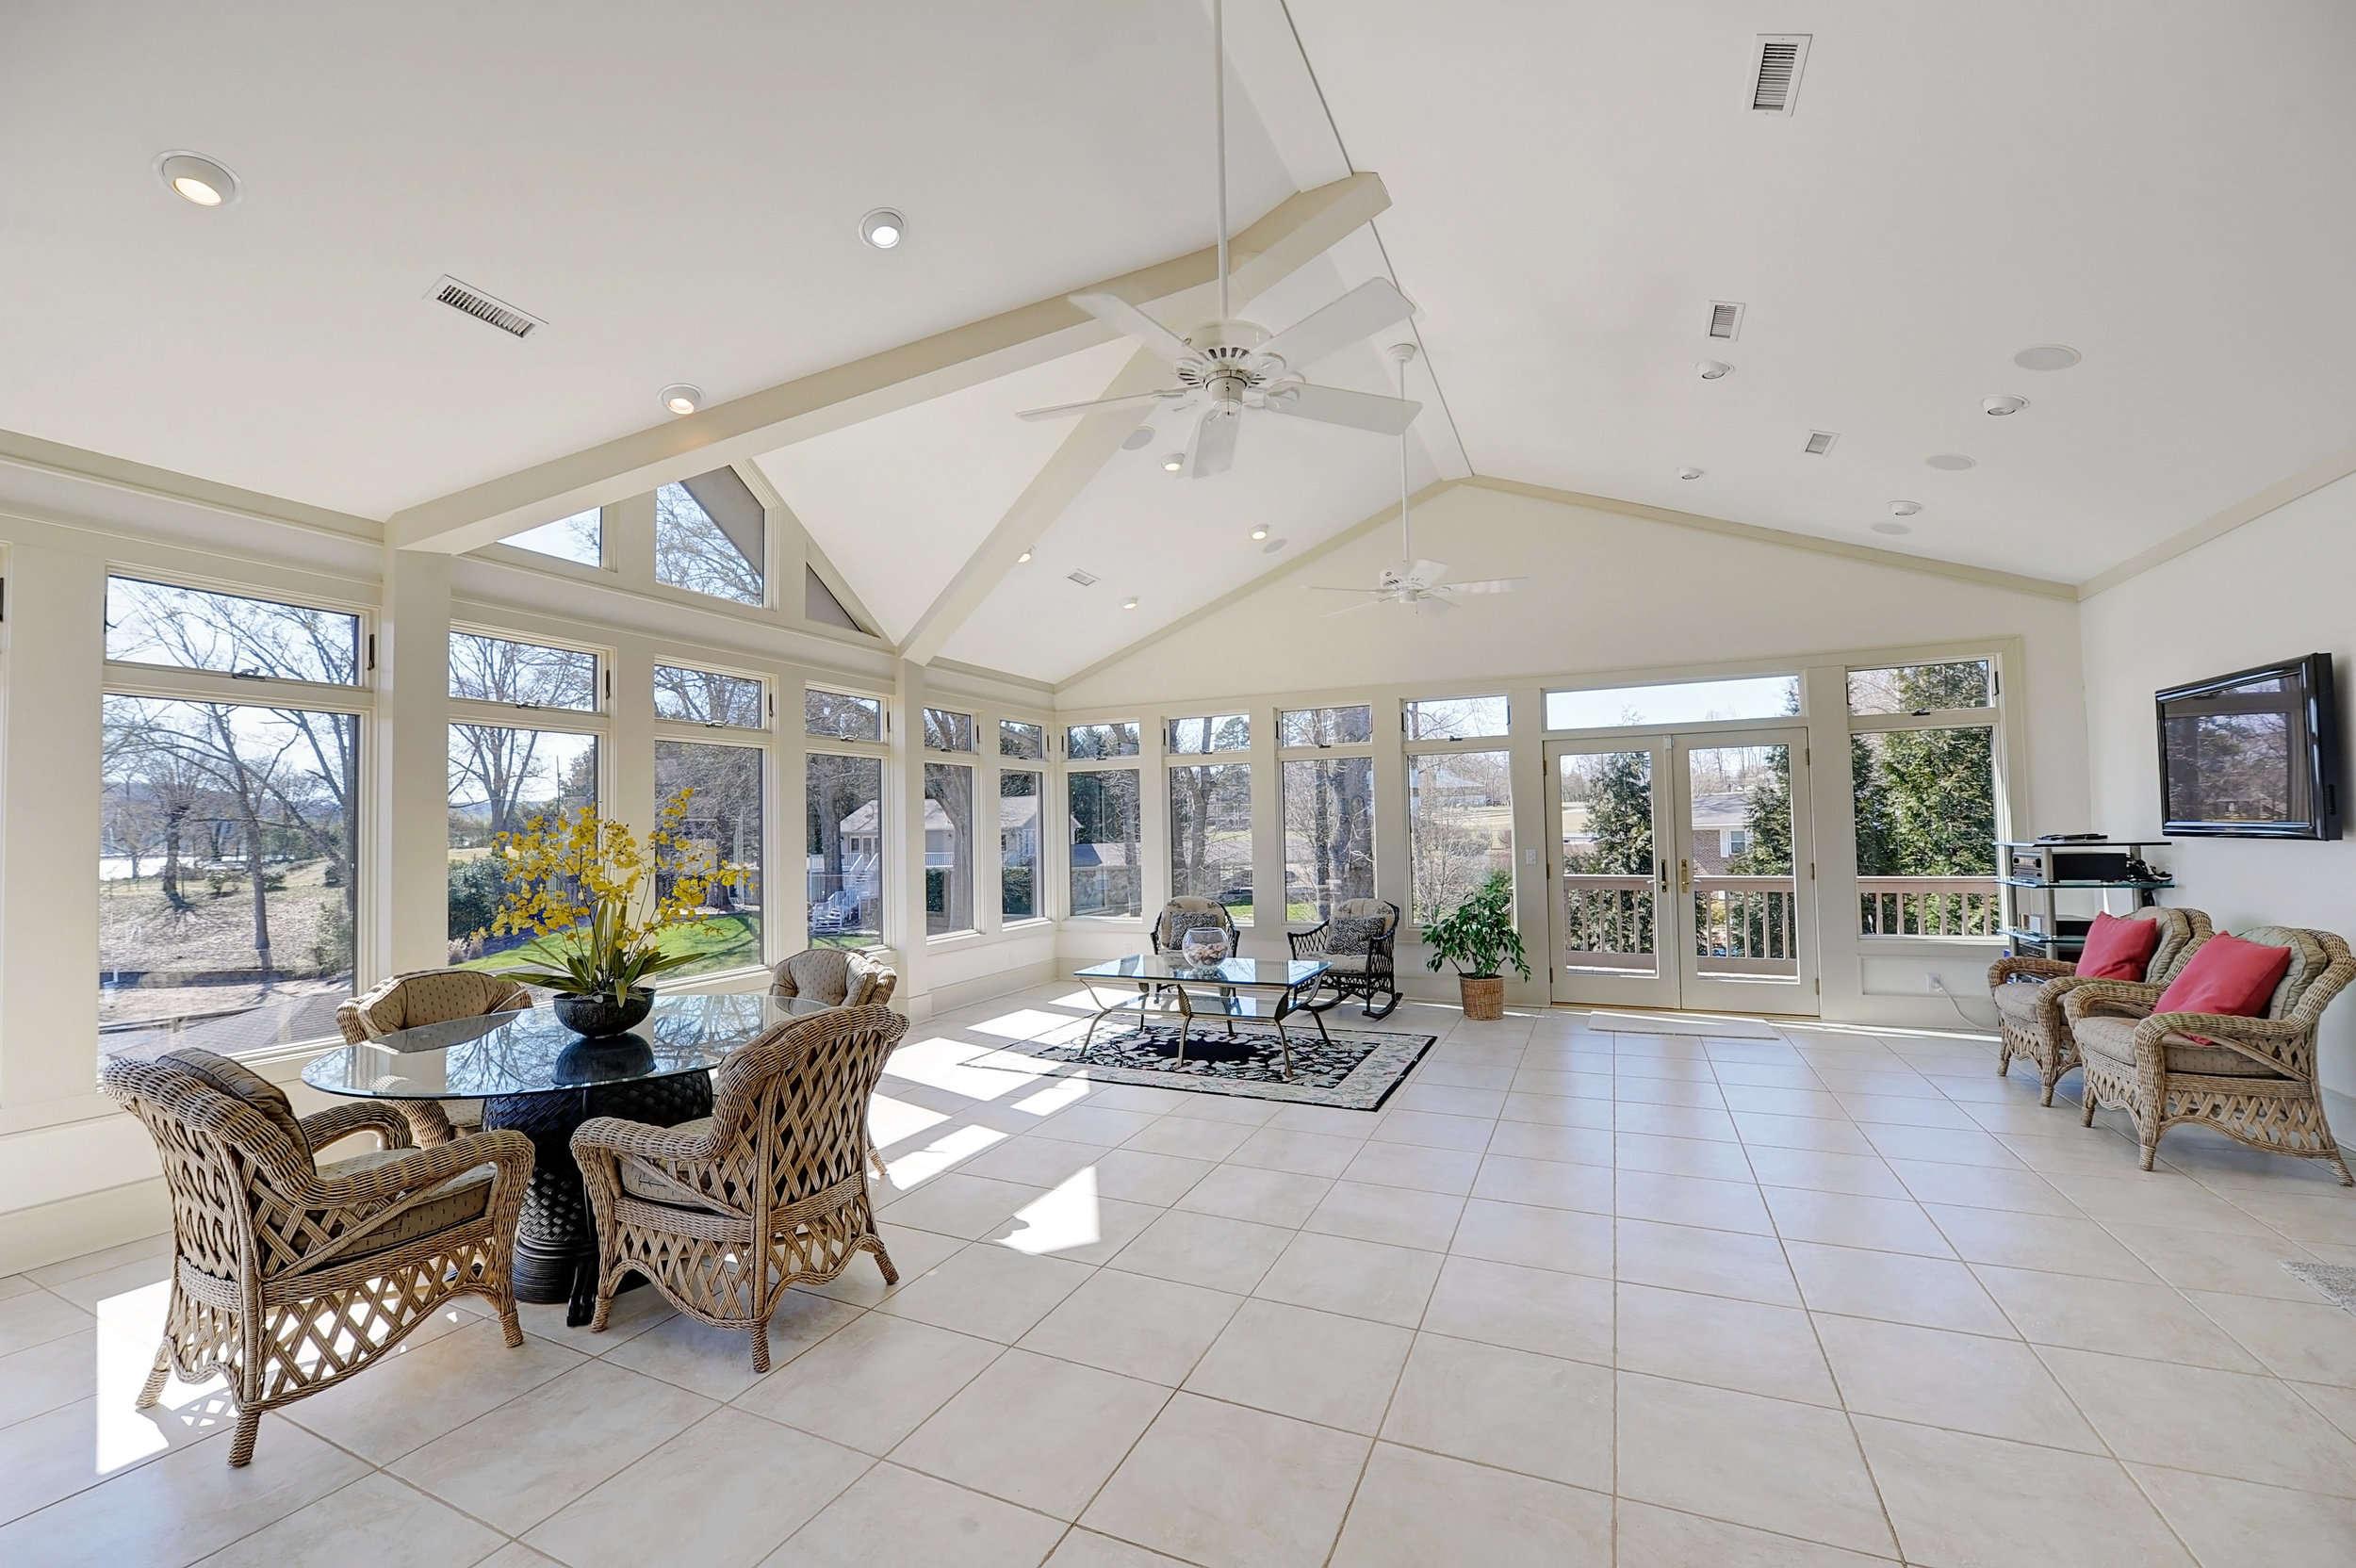 Large sunroom with white tile, rattan furniture, picnic table, fan, and TV